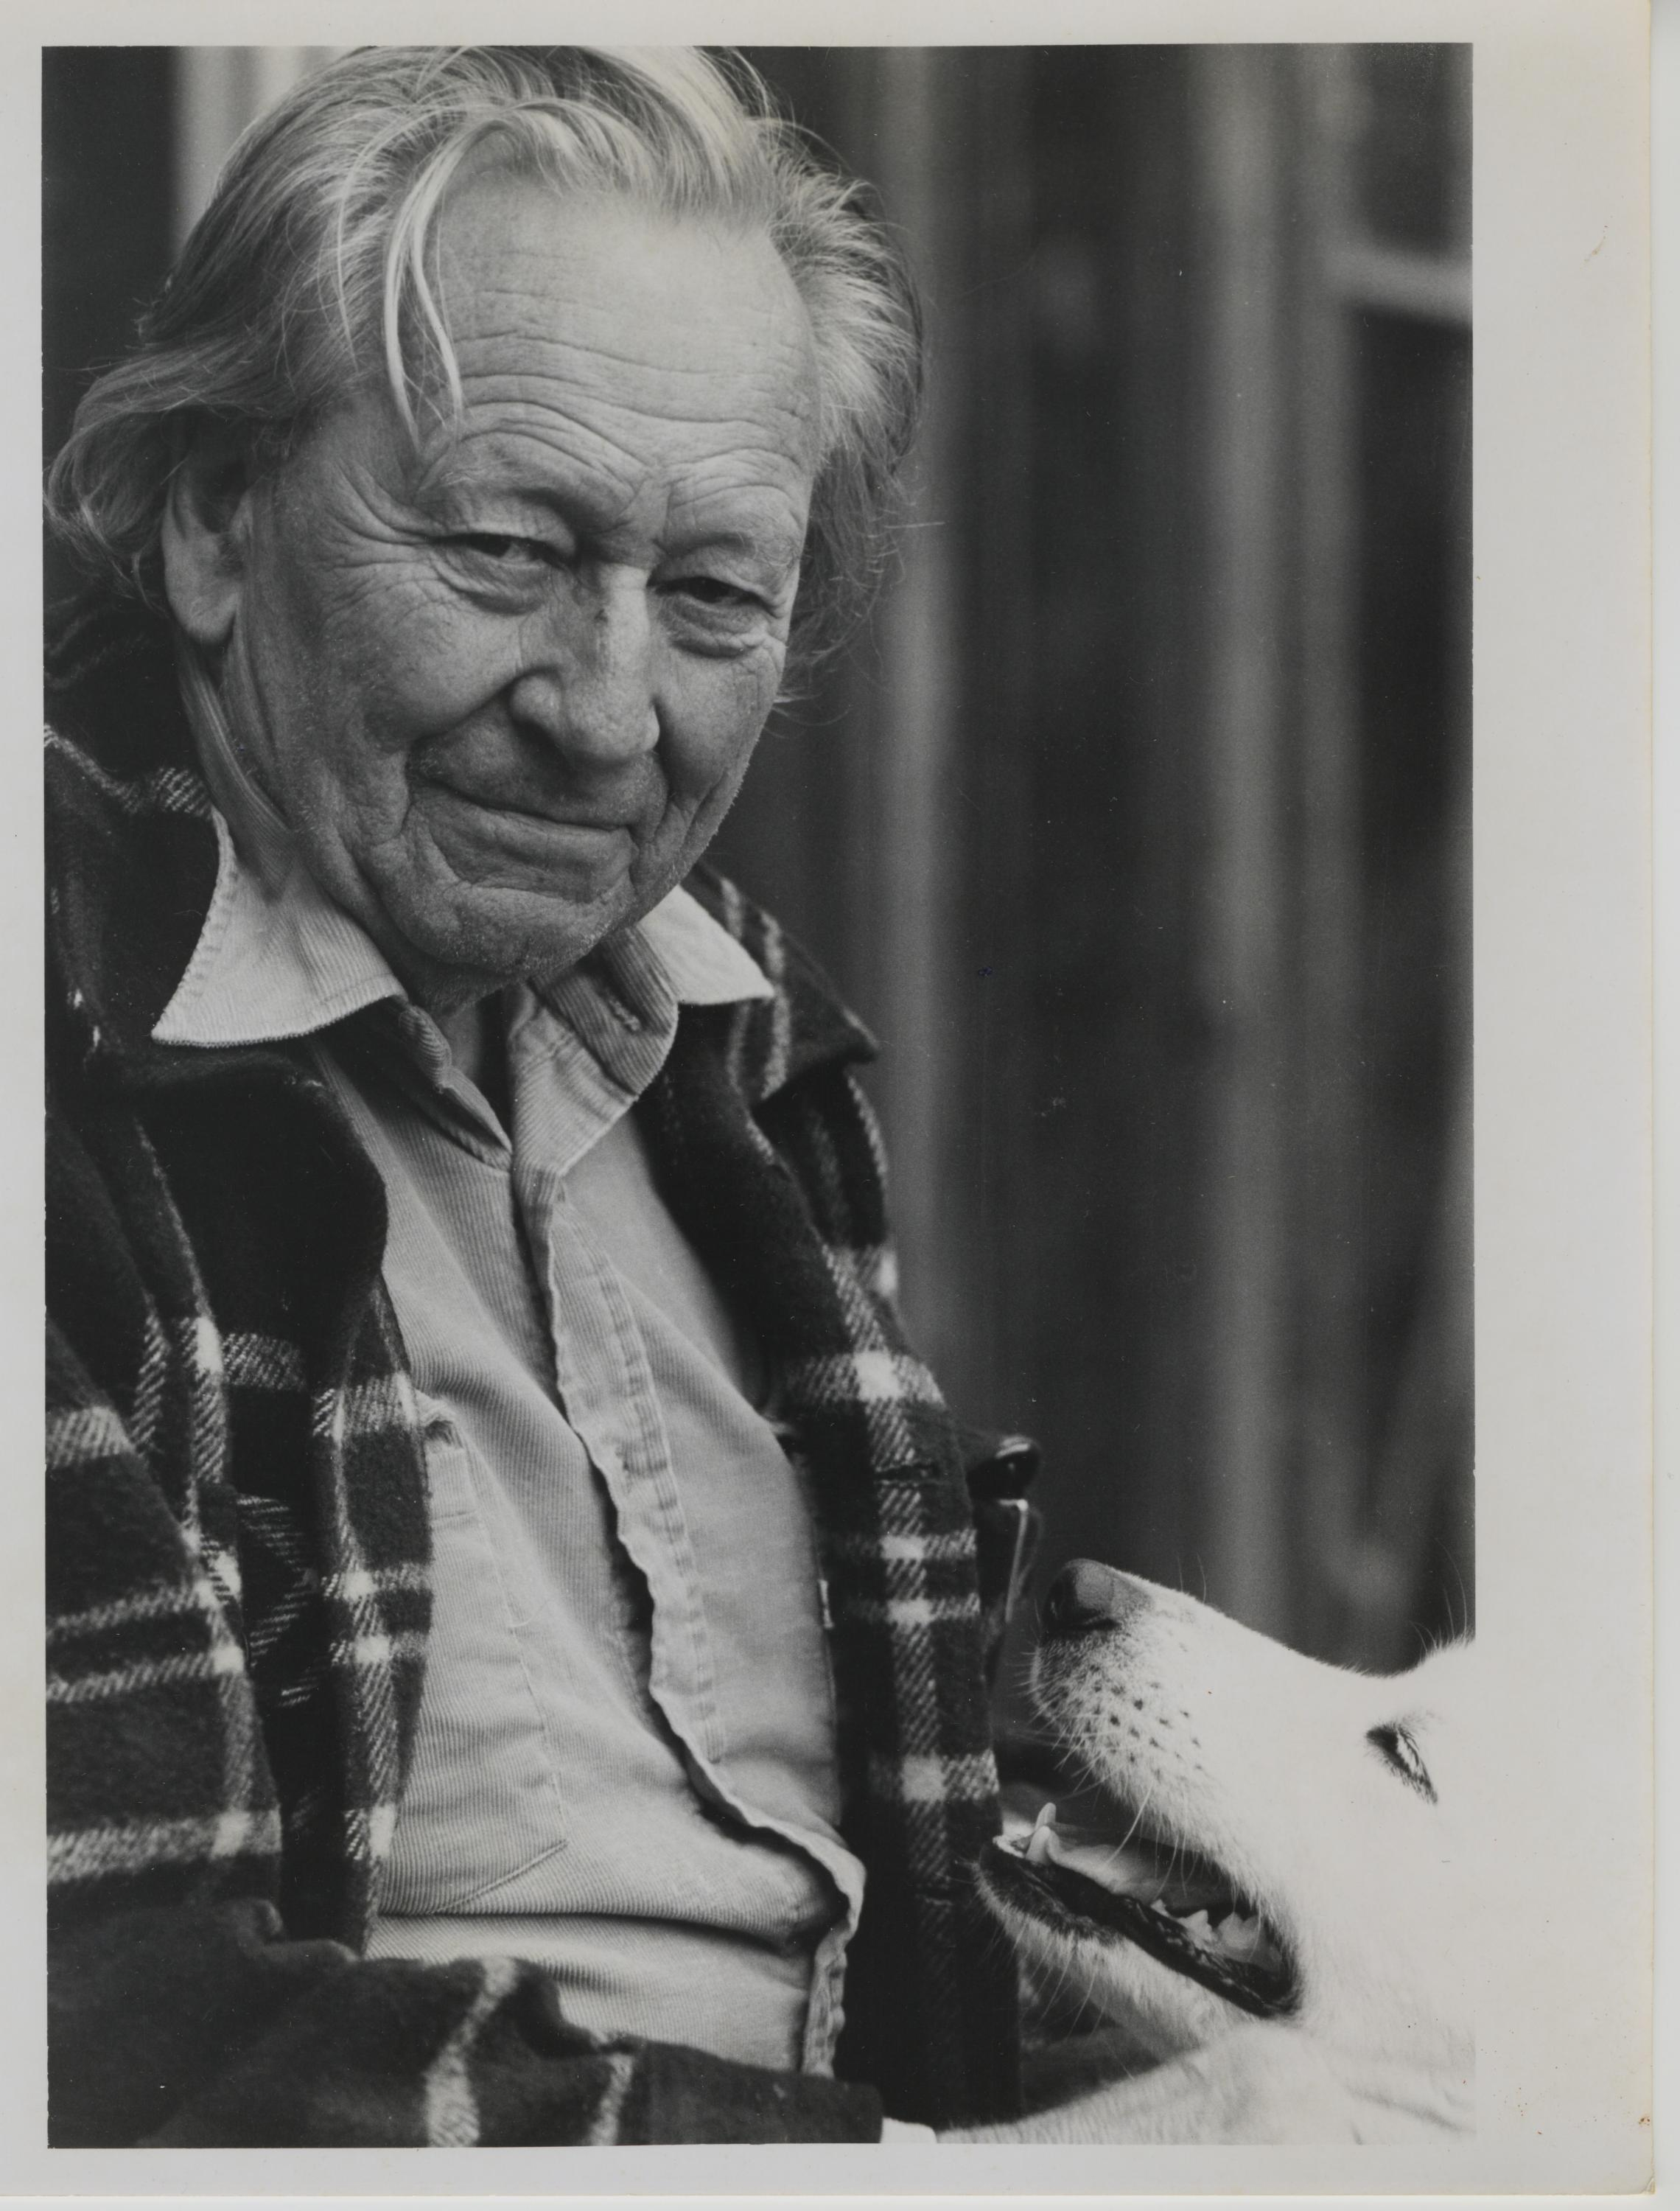 gregory bateson a man of many talents Gregory bateson suggested the influence of a circular system of causation, and proposed that: in short, the behavior of person x affects person y, and the reaction of person y to person x's behavior will then affect person x's behavior, which in turn will affect person y, and so on bateson called this the vicious circle.